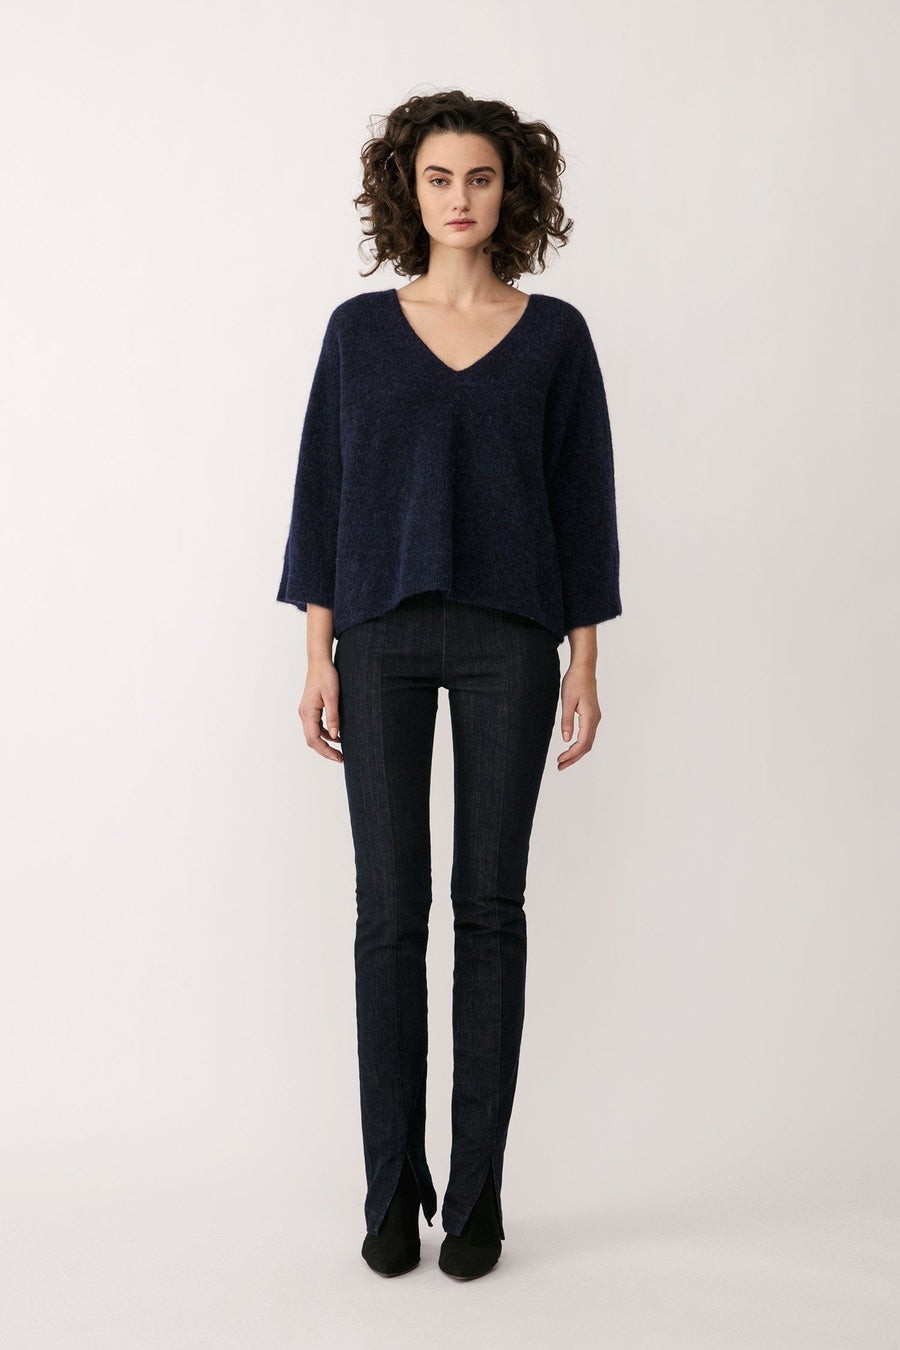 ENNA SWEATER - NAVY Sweater Stylein